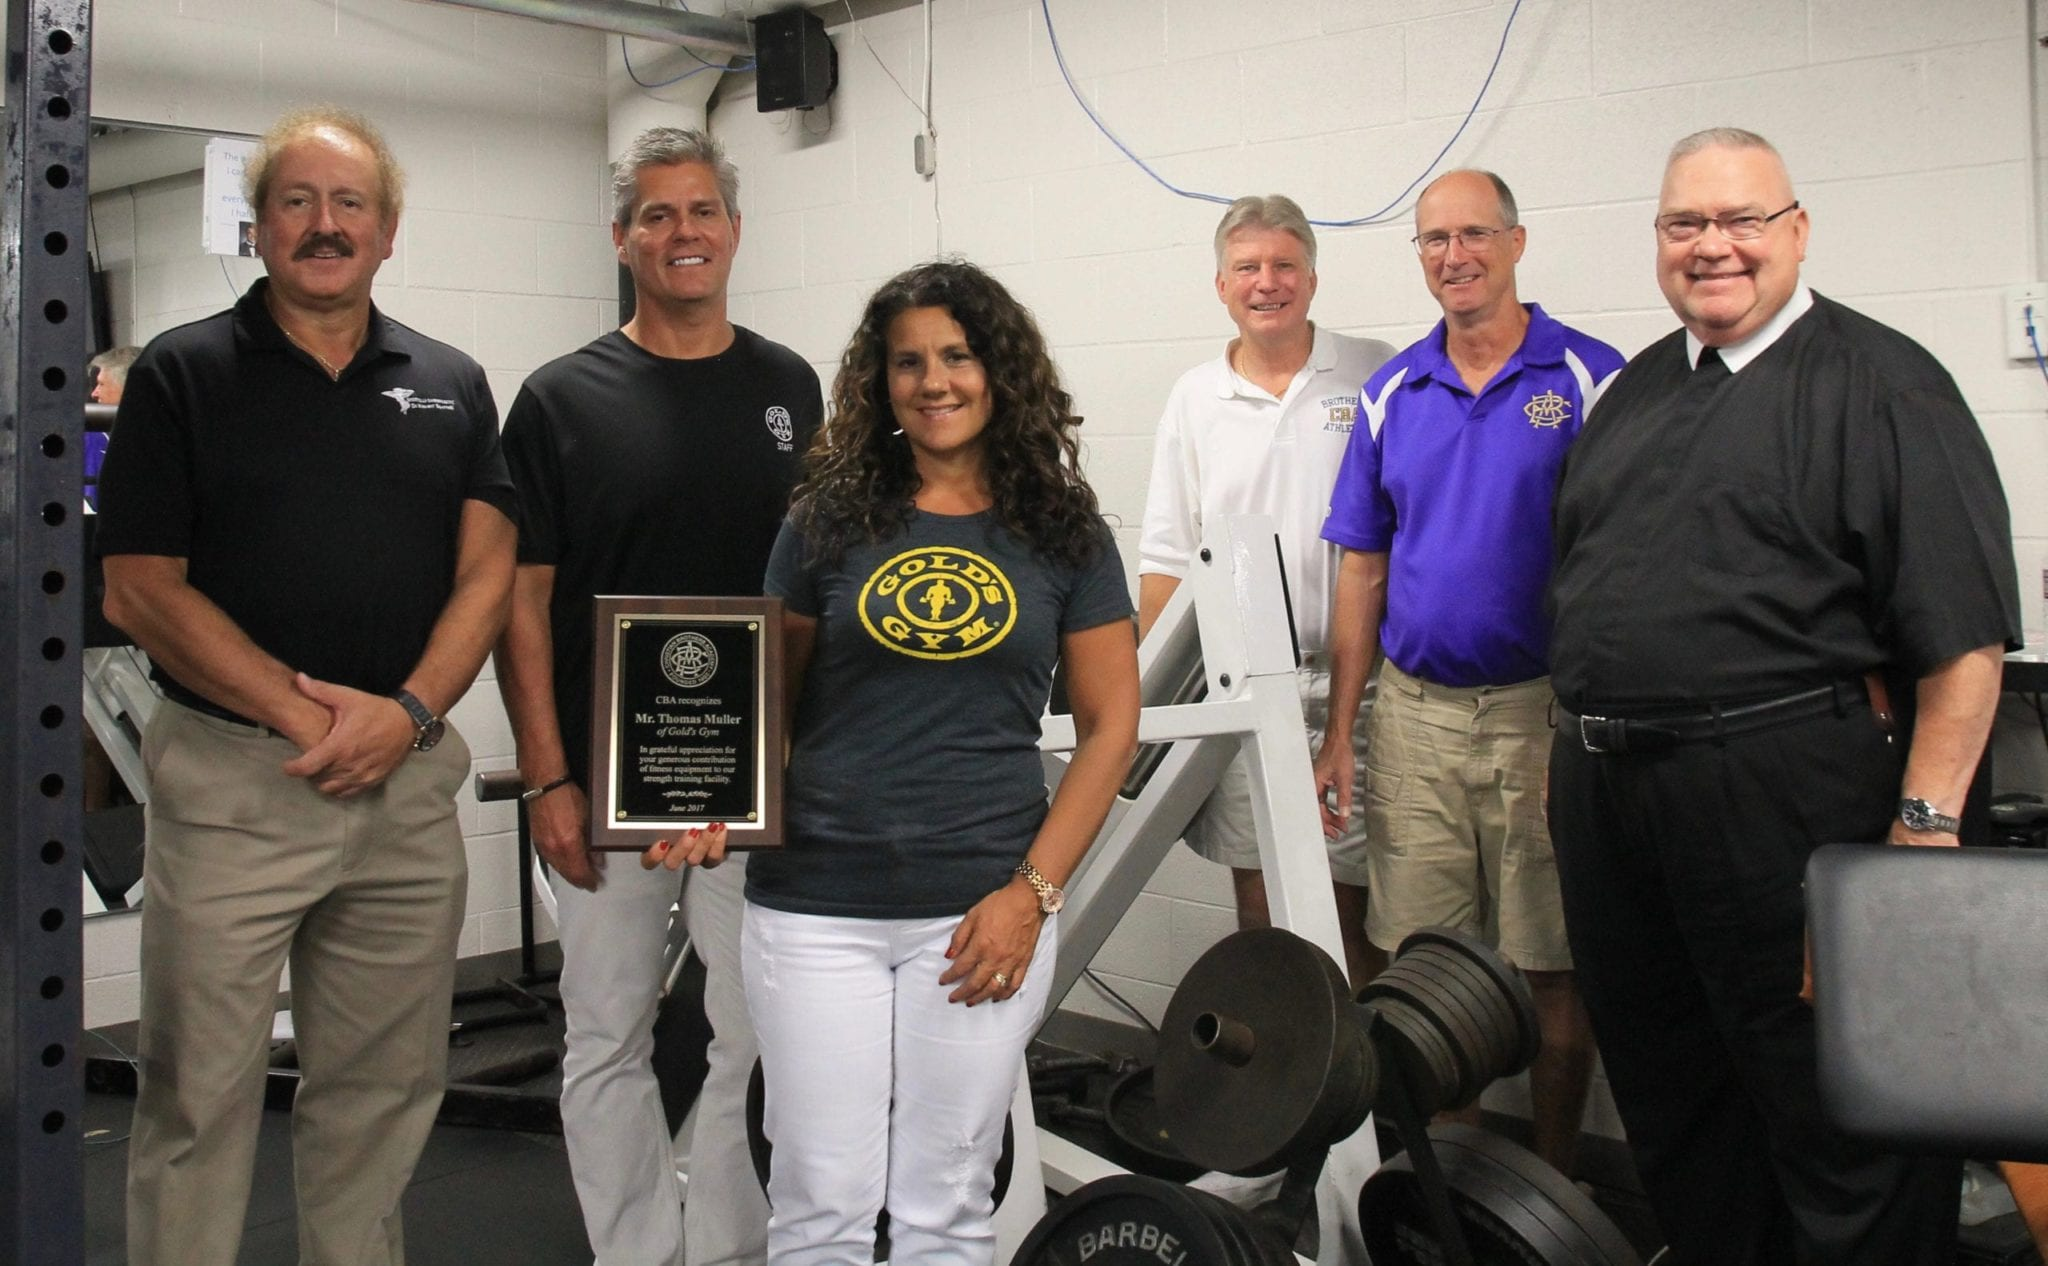 Gold's Gym donates equipment to CBA weight room